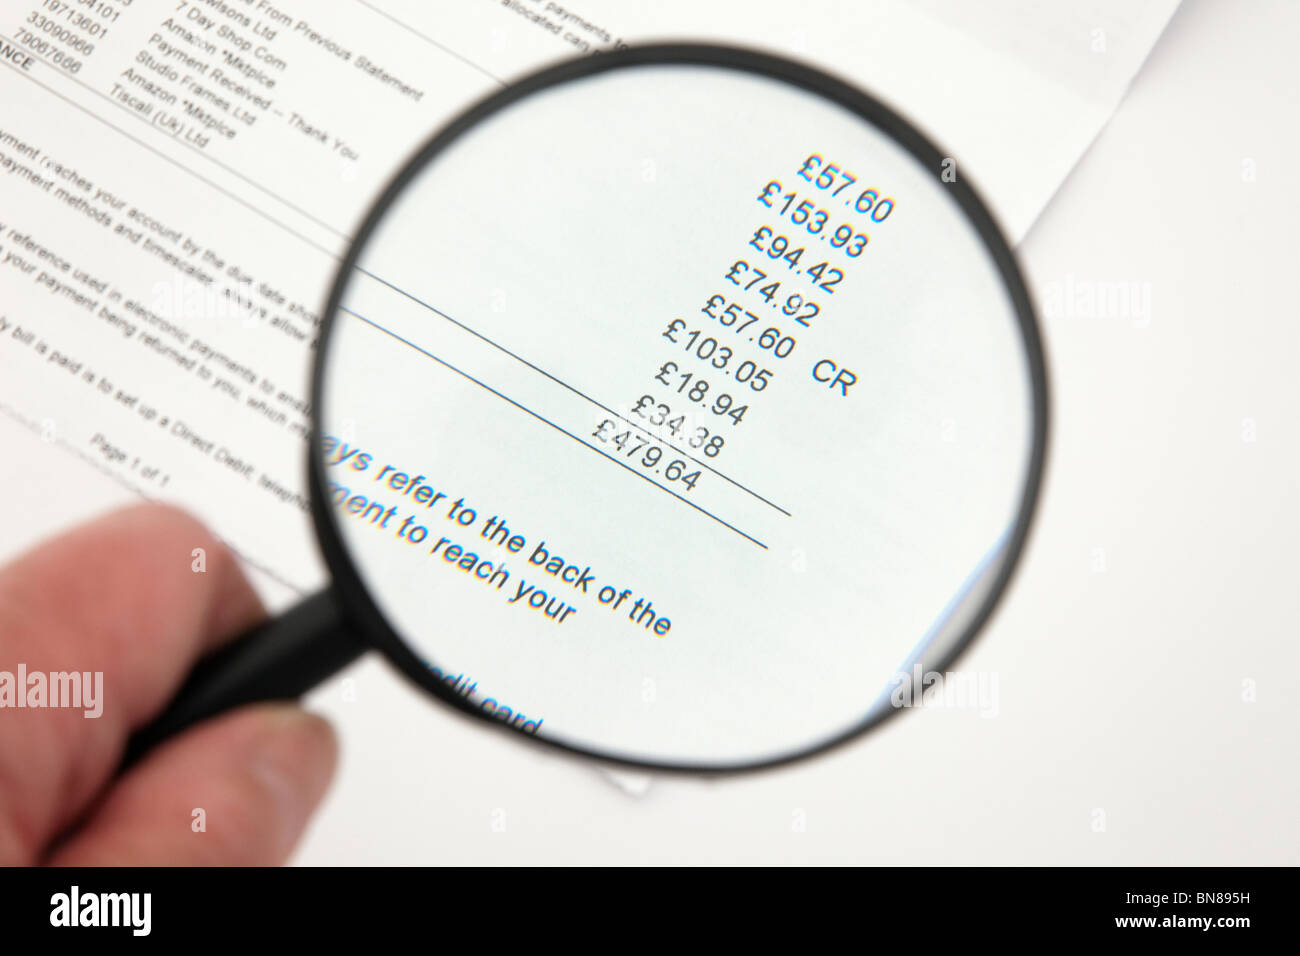 Person holding a magnifying glass to look at a large credit card bill. - Stock Image